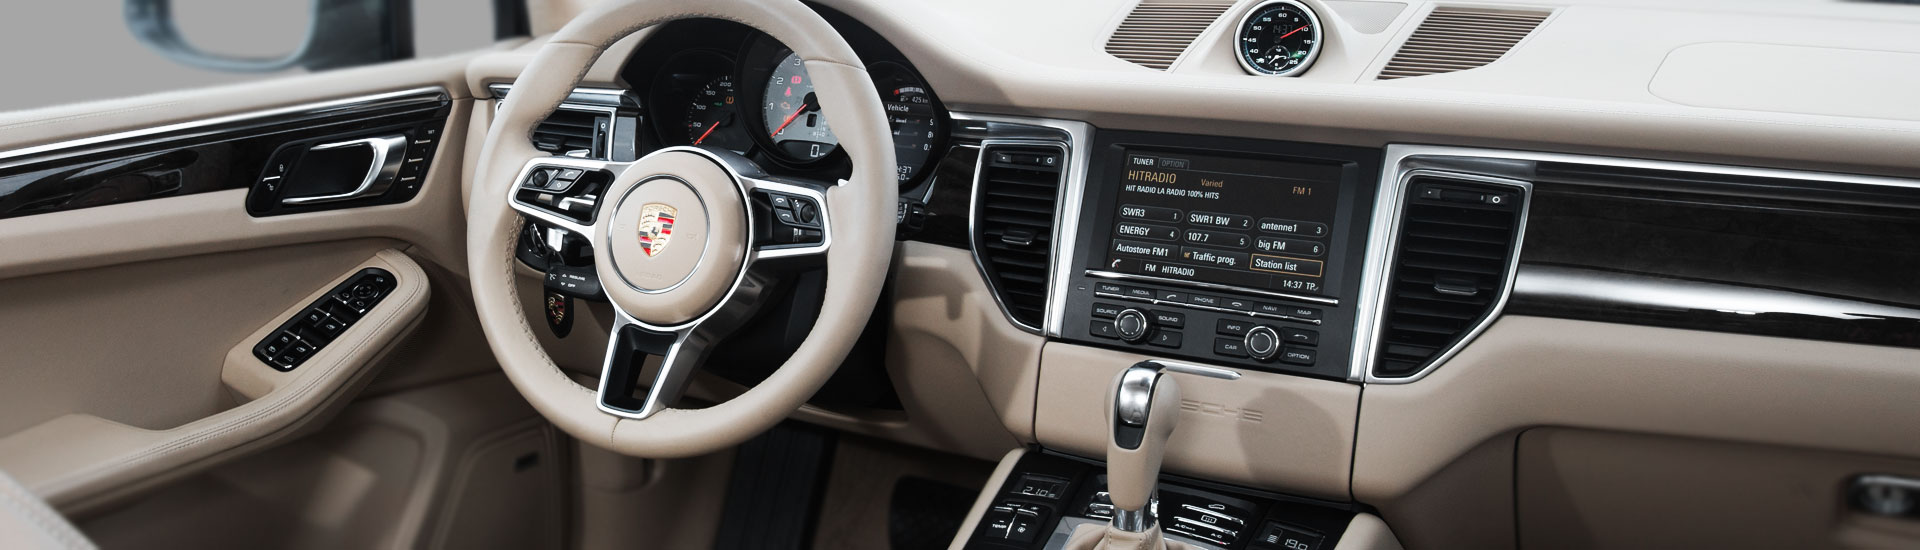 Porsche Macan Custom Dash Kits